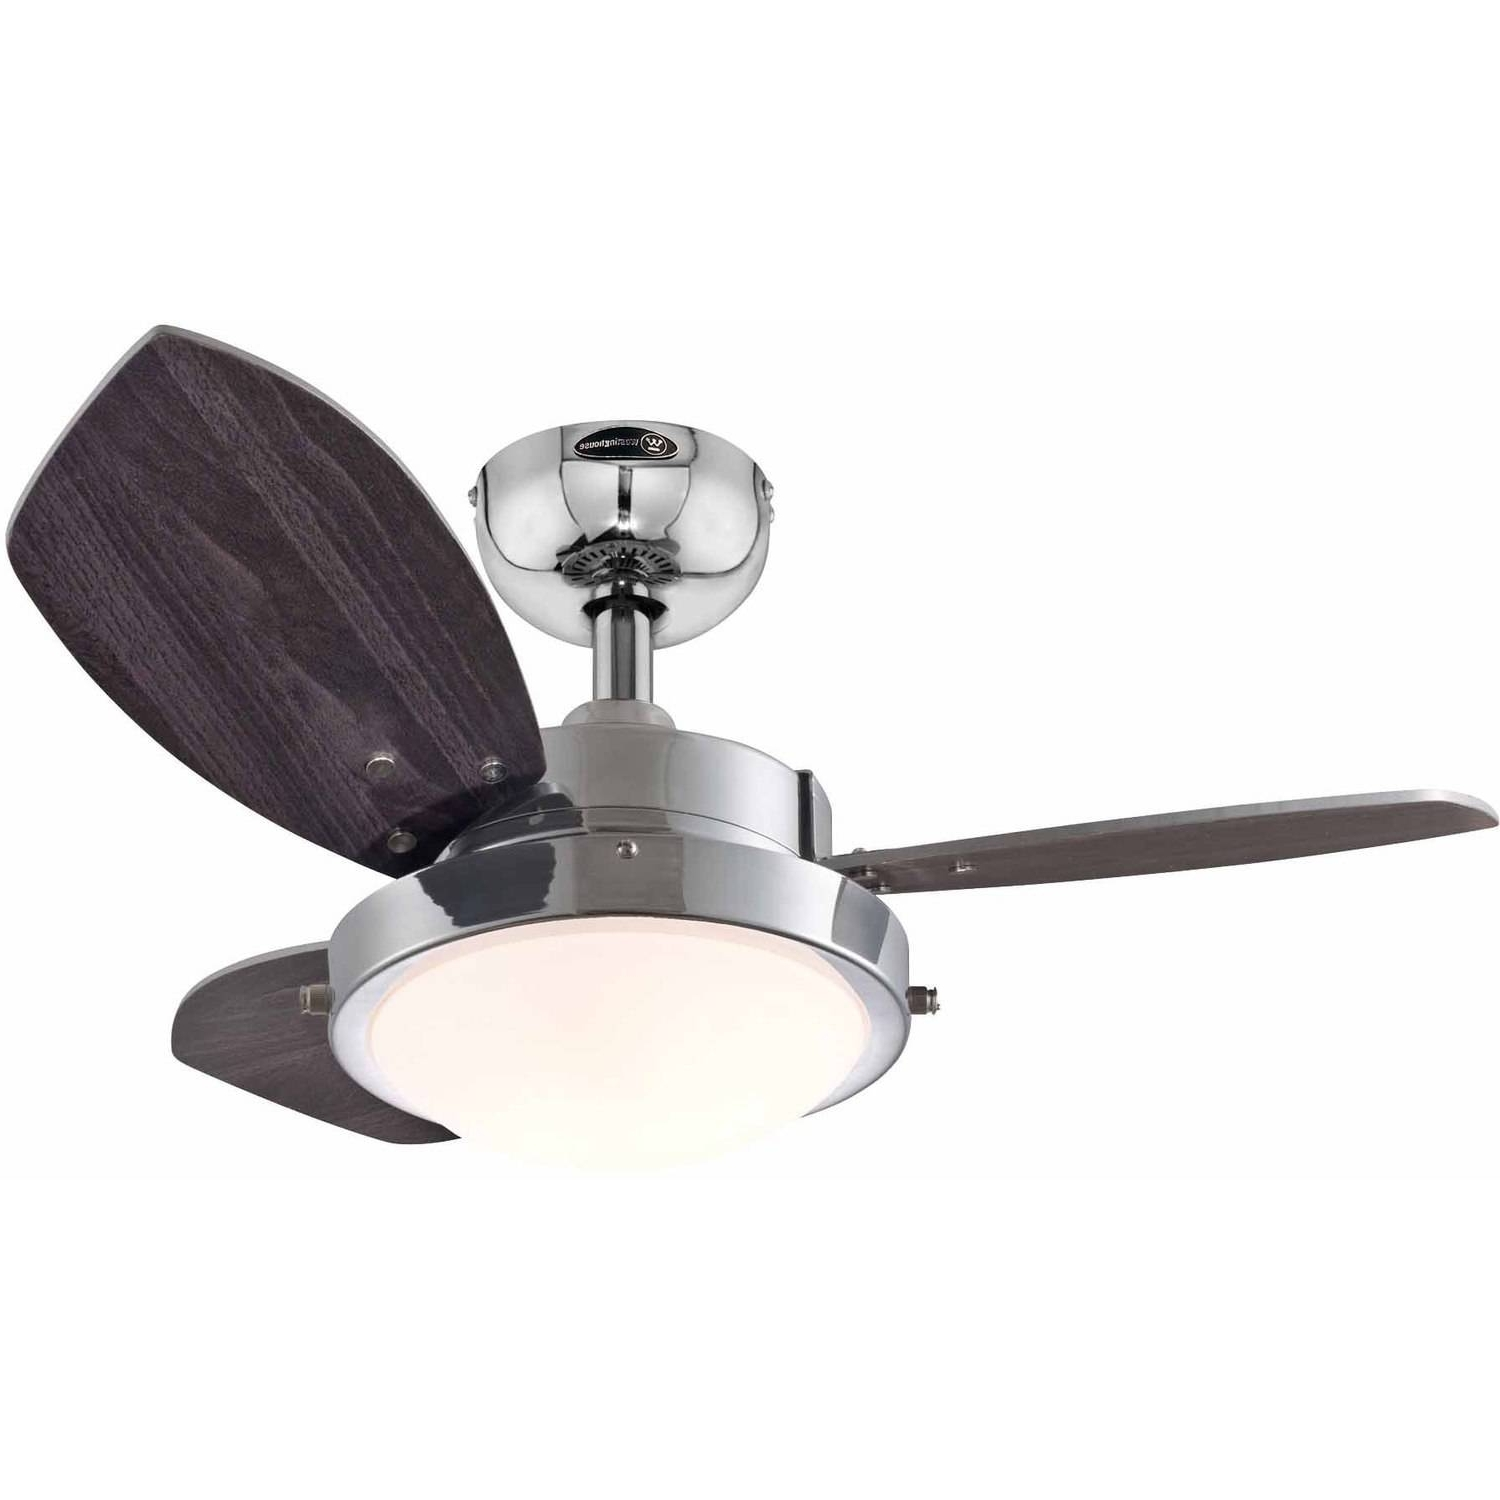 "Outdoor Ceiling Fan With Brake For Fashionable Westinghouse 7224300 24"" Quince Reversible Indoor Ceiling Fan (View 16 of 20)"